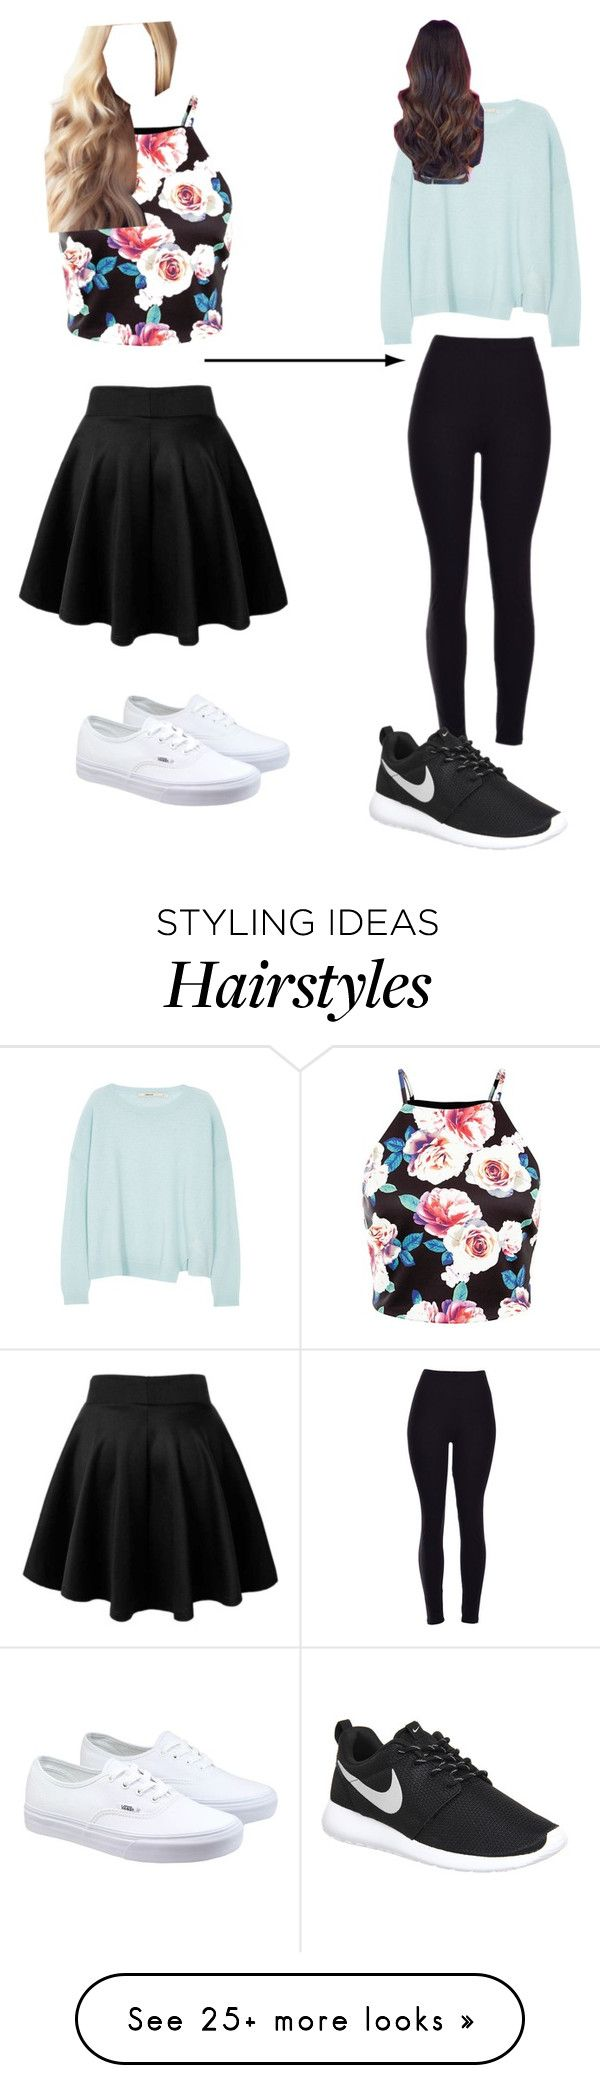 """Girly By Day, Tomboy By Night"" by agg-72104 on Polyvore featuring J Brand, Vans, NIKE, women's clothing, women's fashion, women, female, woman, misses and juniors"